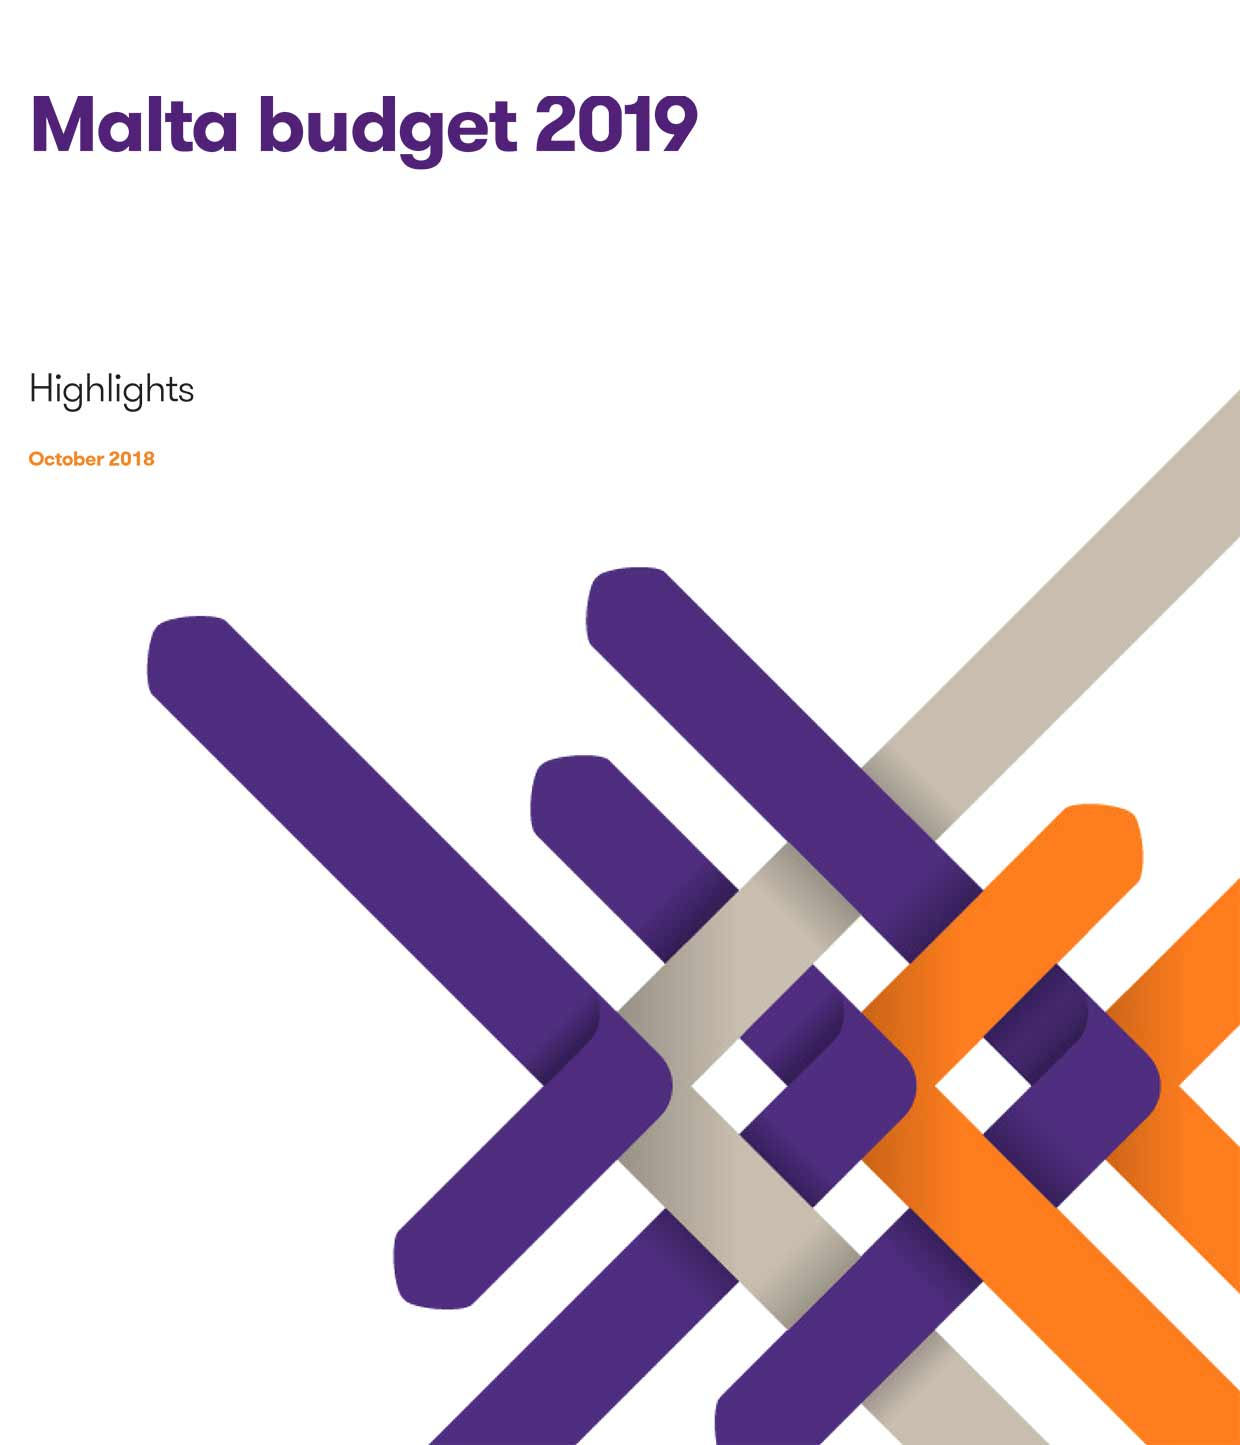 The Malta budget 2019 frontpage brochure